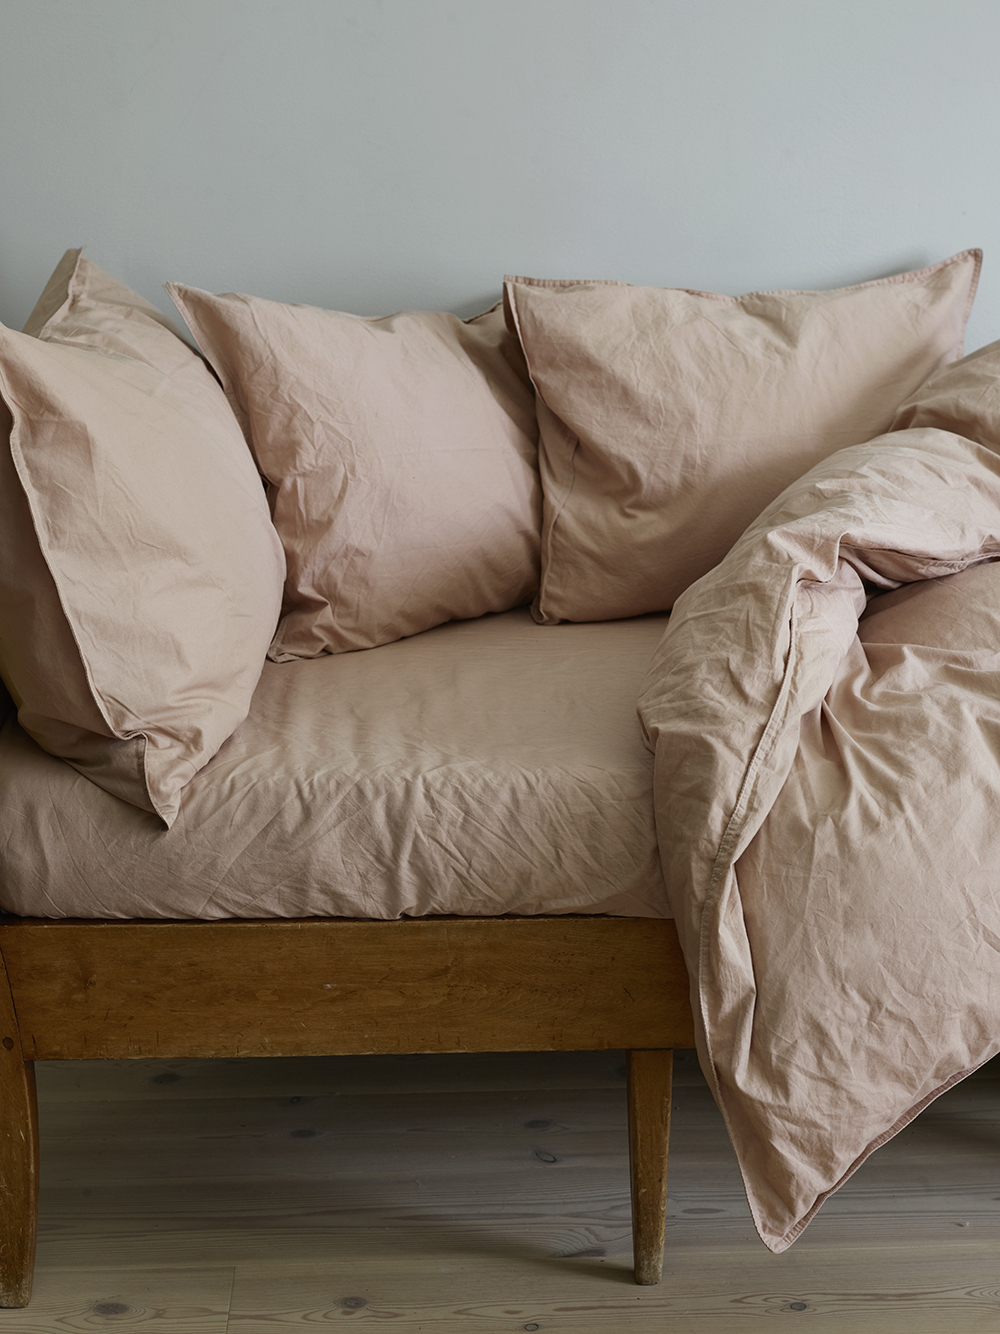 Organic Cotton Bed Linen